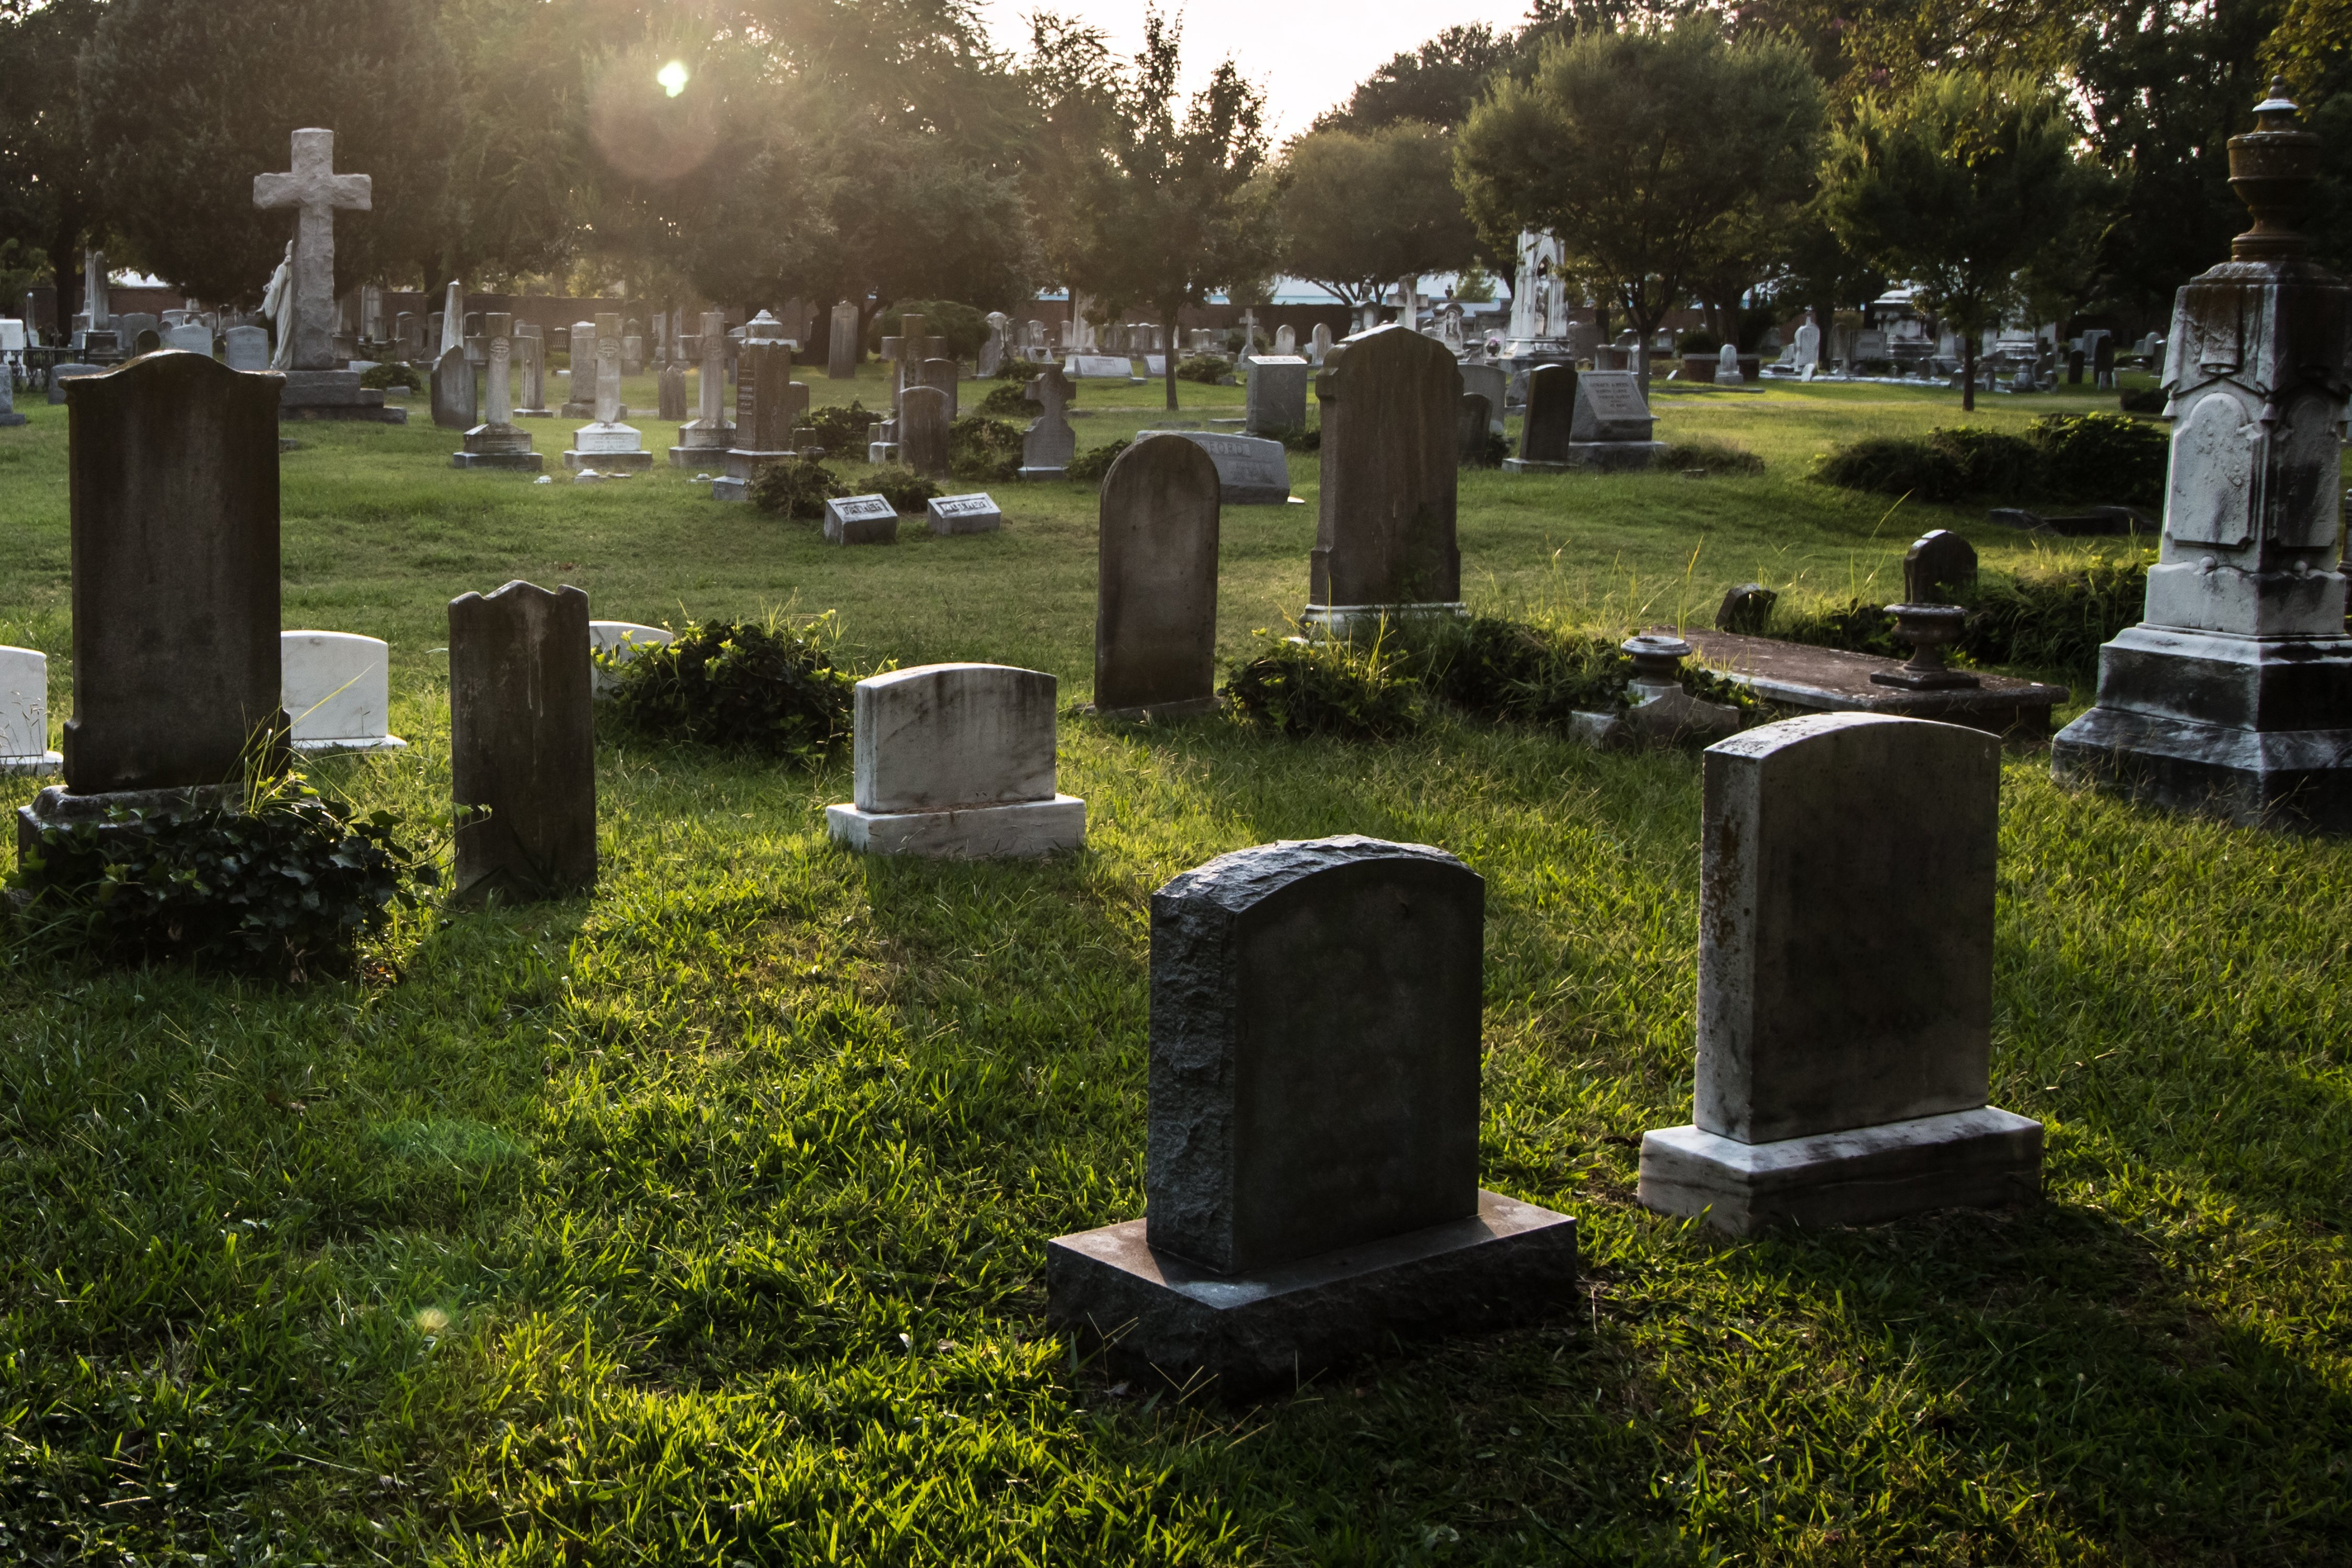 Tombstones in cemetery at dusk | Photo: Shutterstock.com